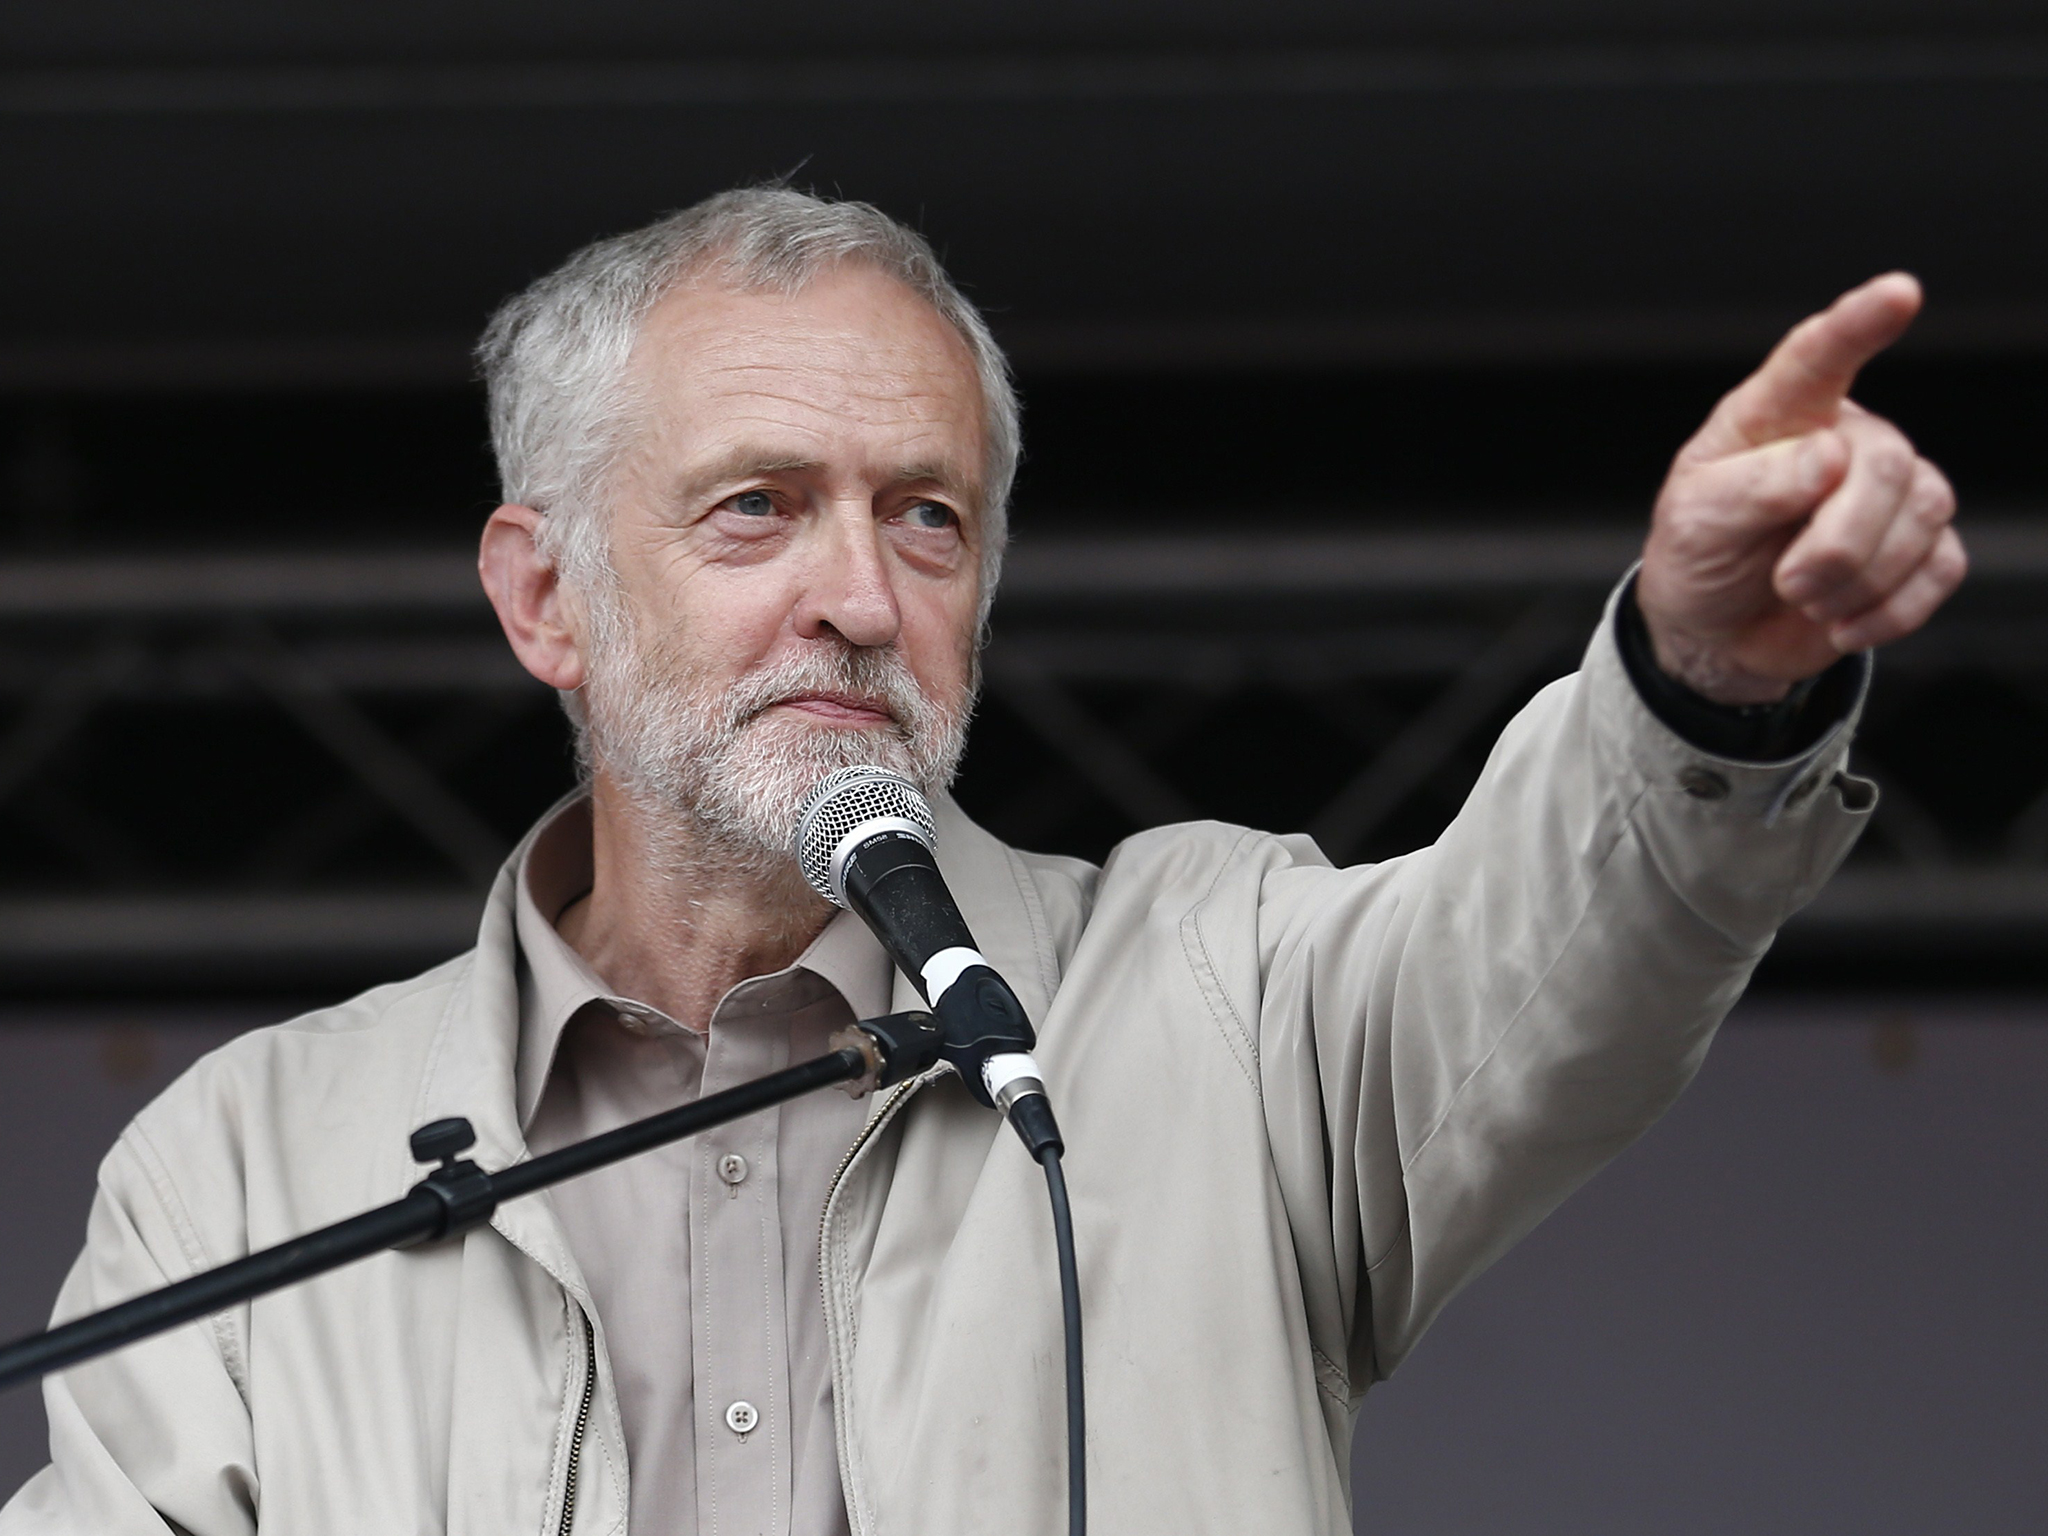 Pessimism after Corbyn